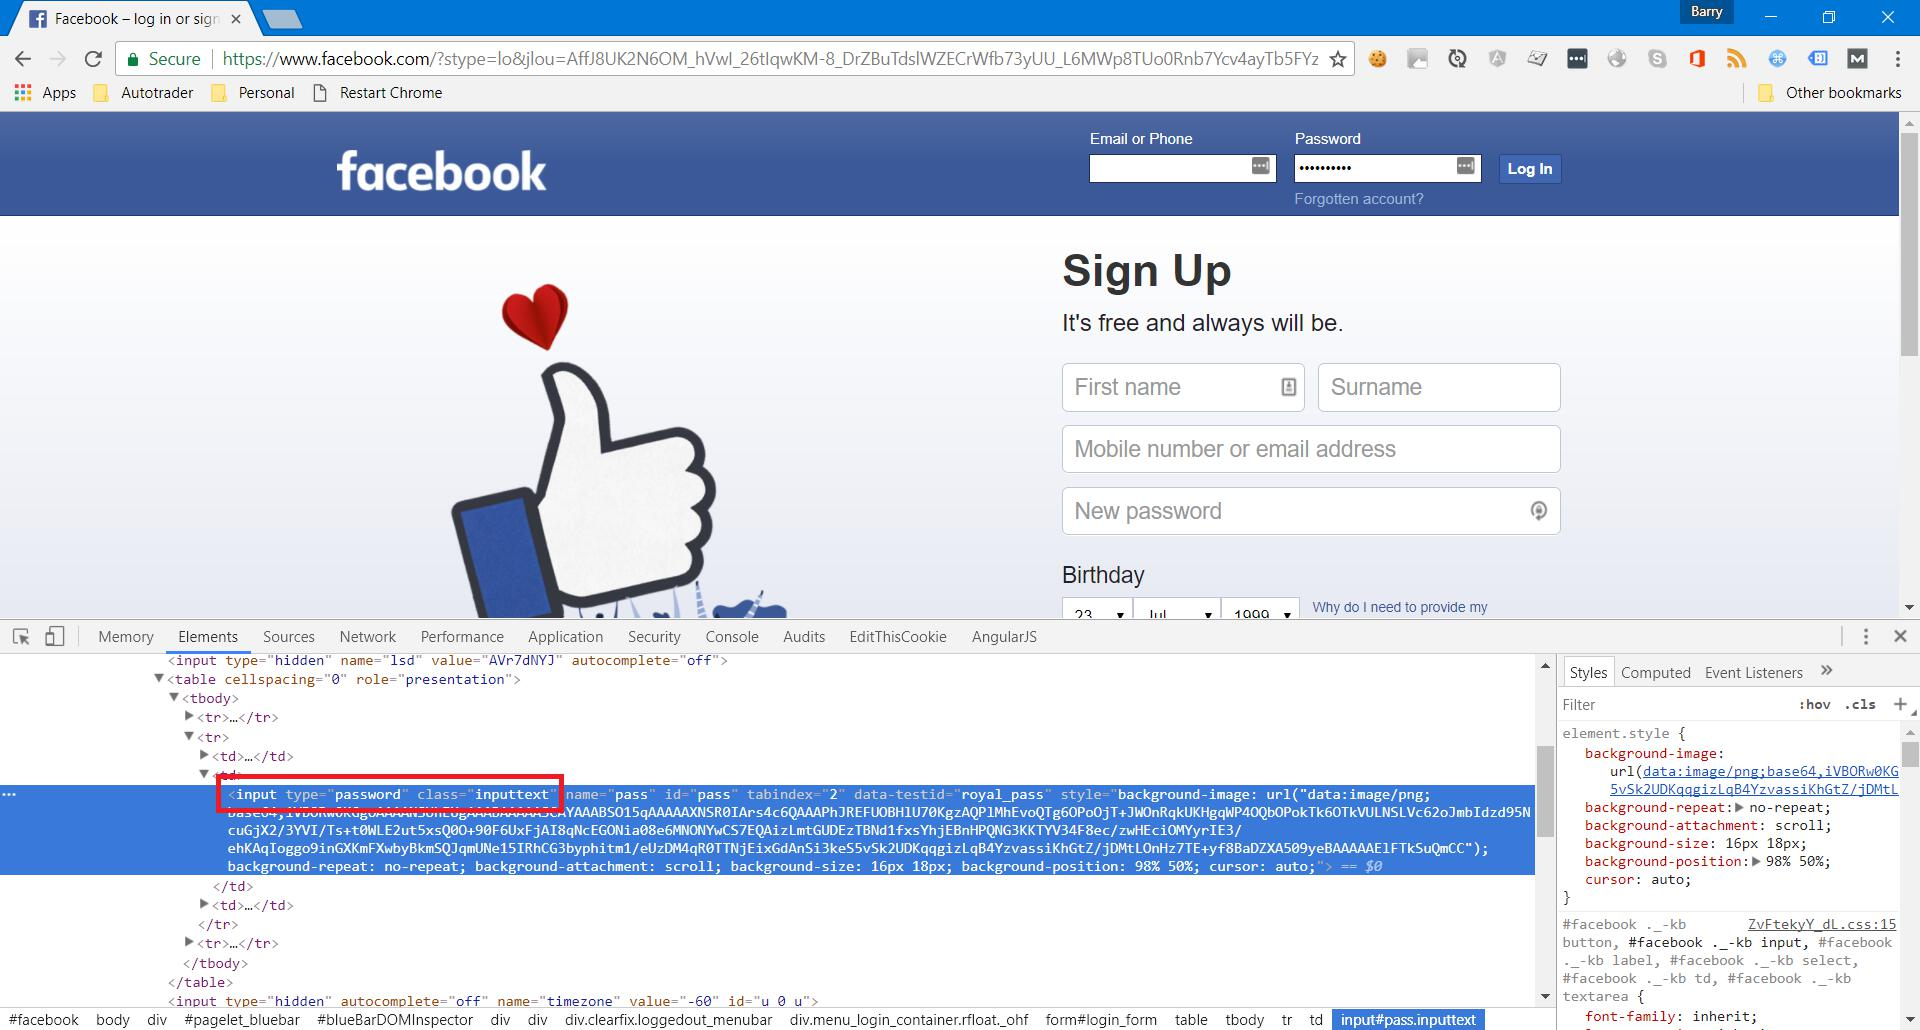 Facebook inspect element password input field